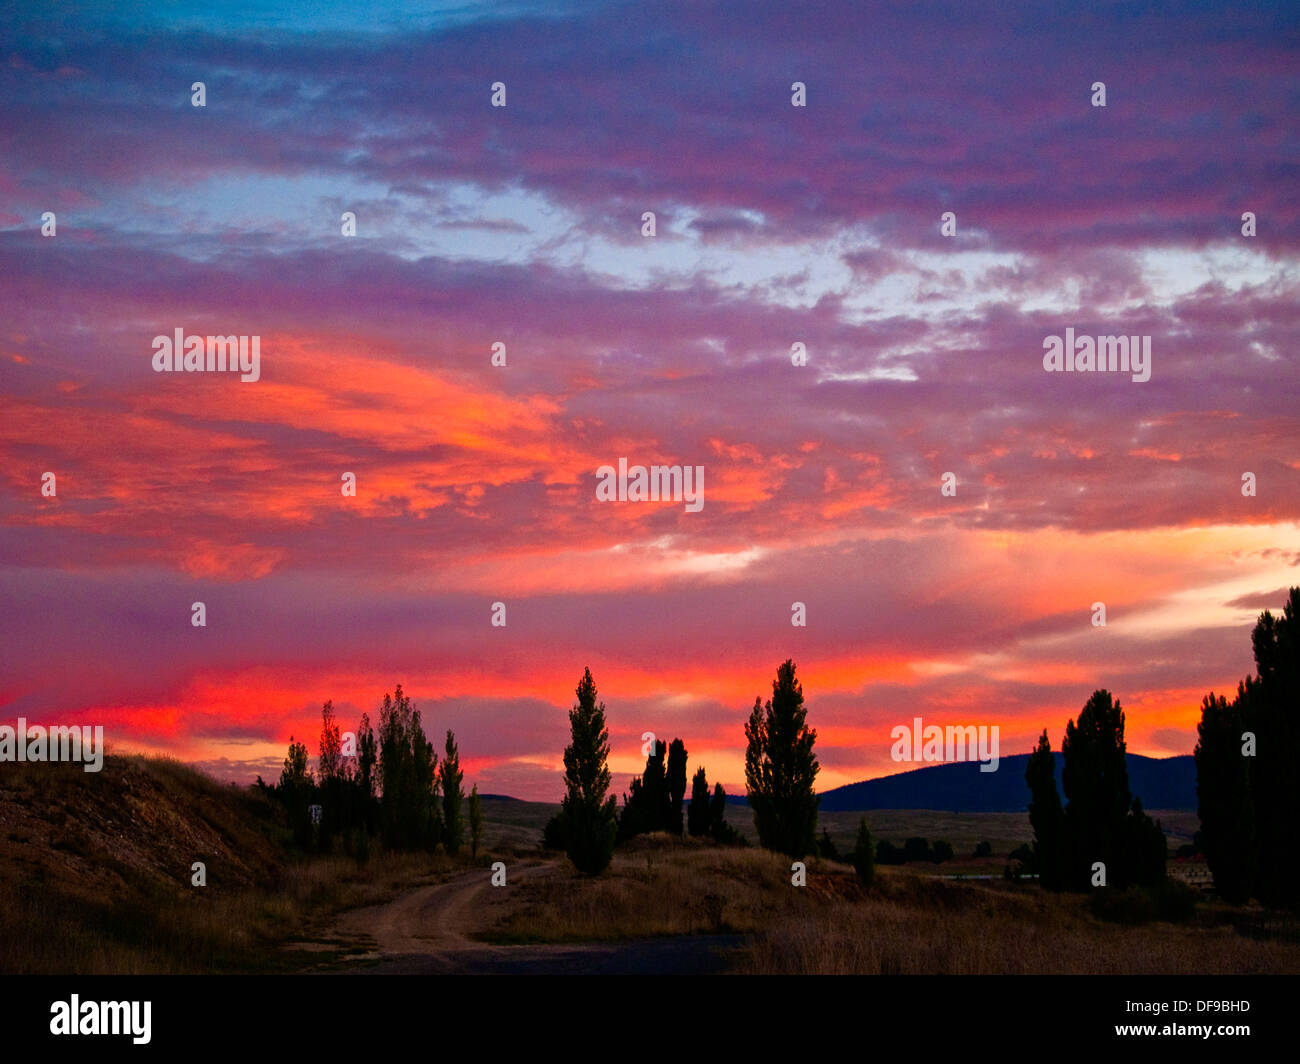 Sunset afterglow near Cooma, Snowy Mountains, Australia - Stock Image